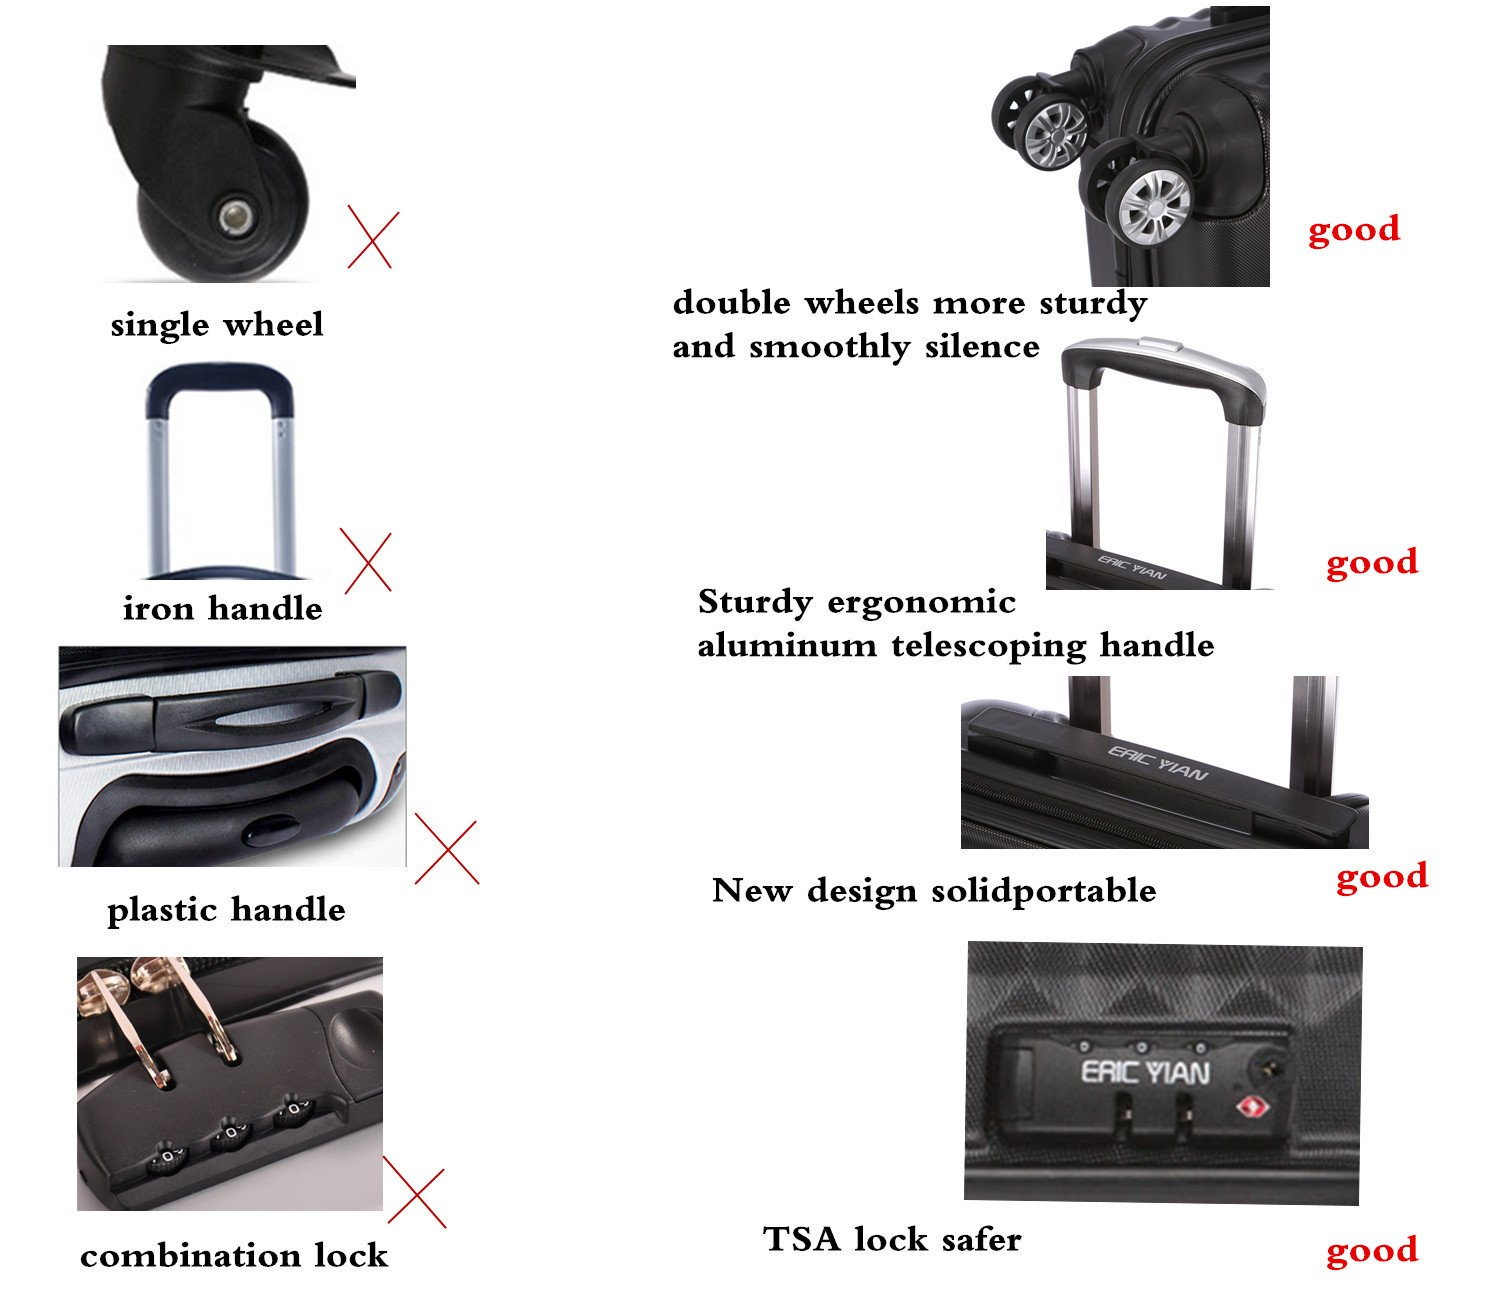 Luggage Set 3 Piece ABS Trolley Suitcase Spinner Hardshell Lightweight Suitcases TSA by ERIC YIAN (Image #7)